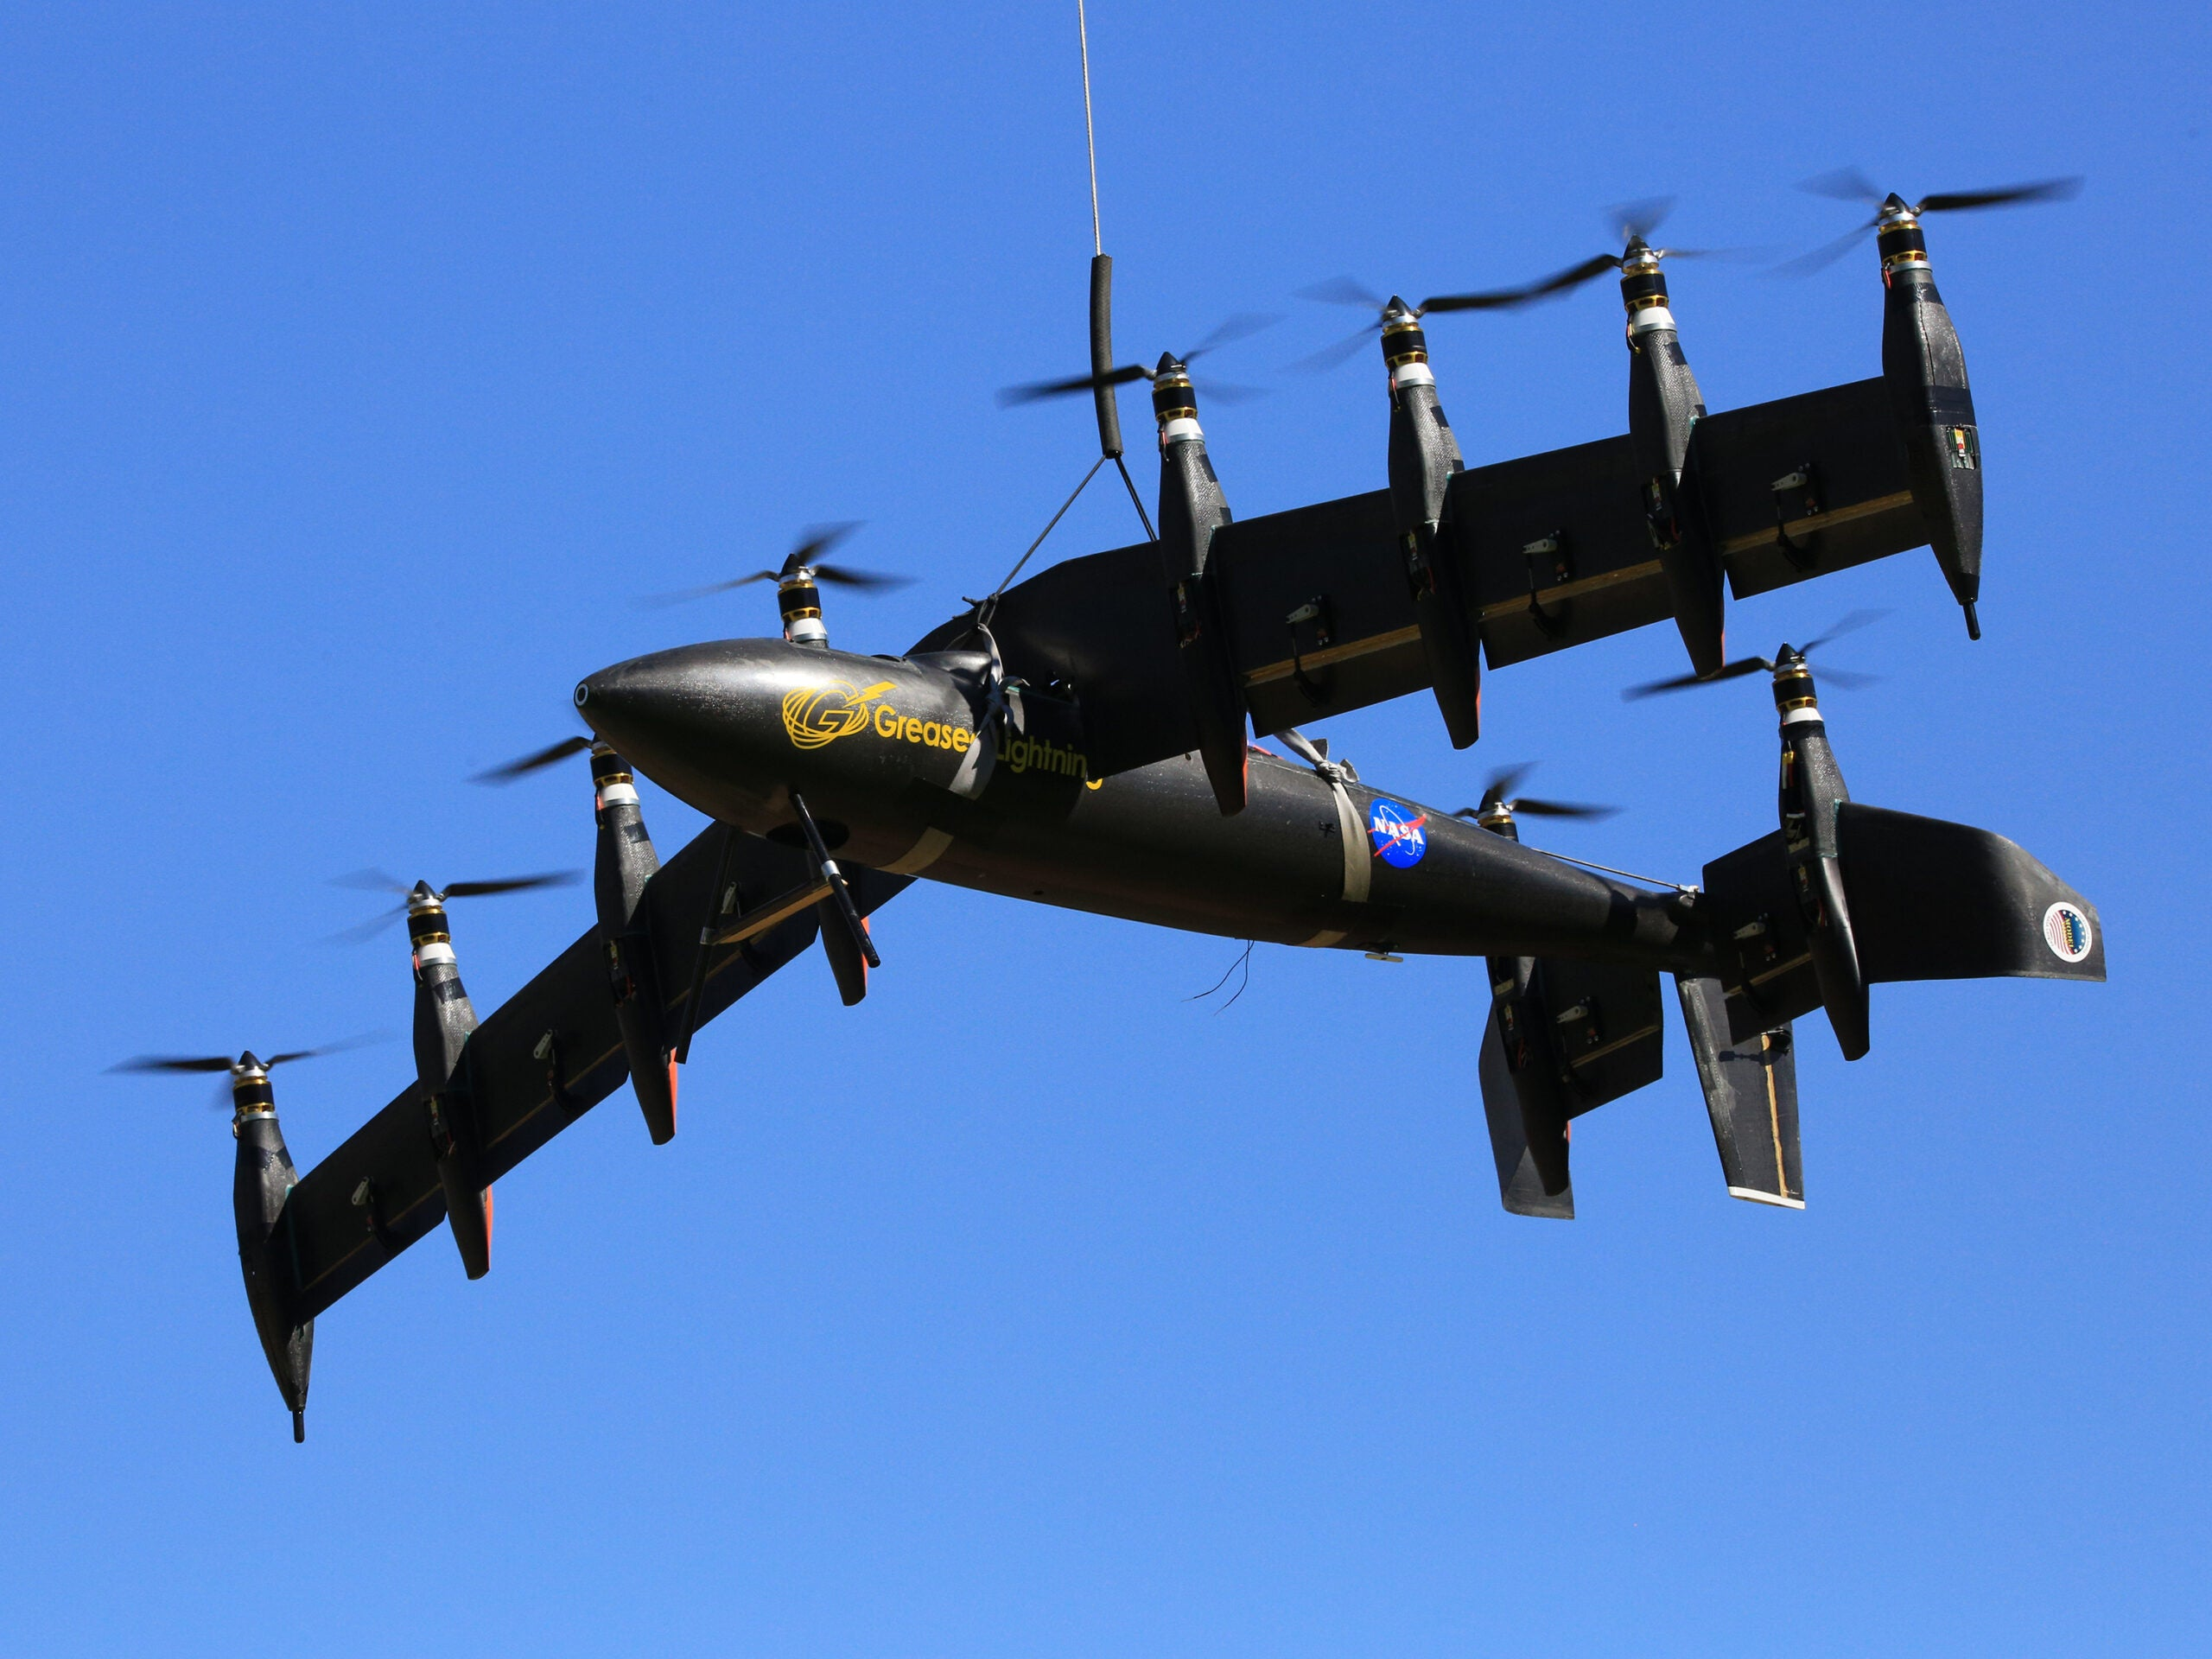 NASA's Greased Lightning Tests Vertical Takeoff